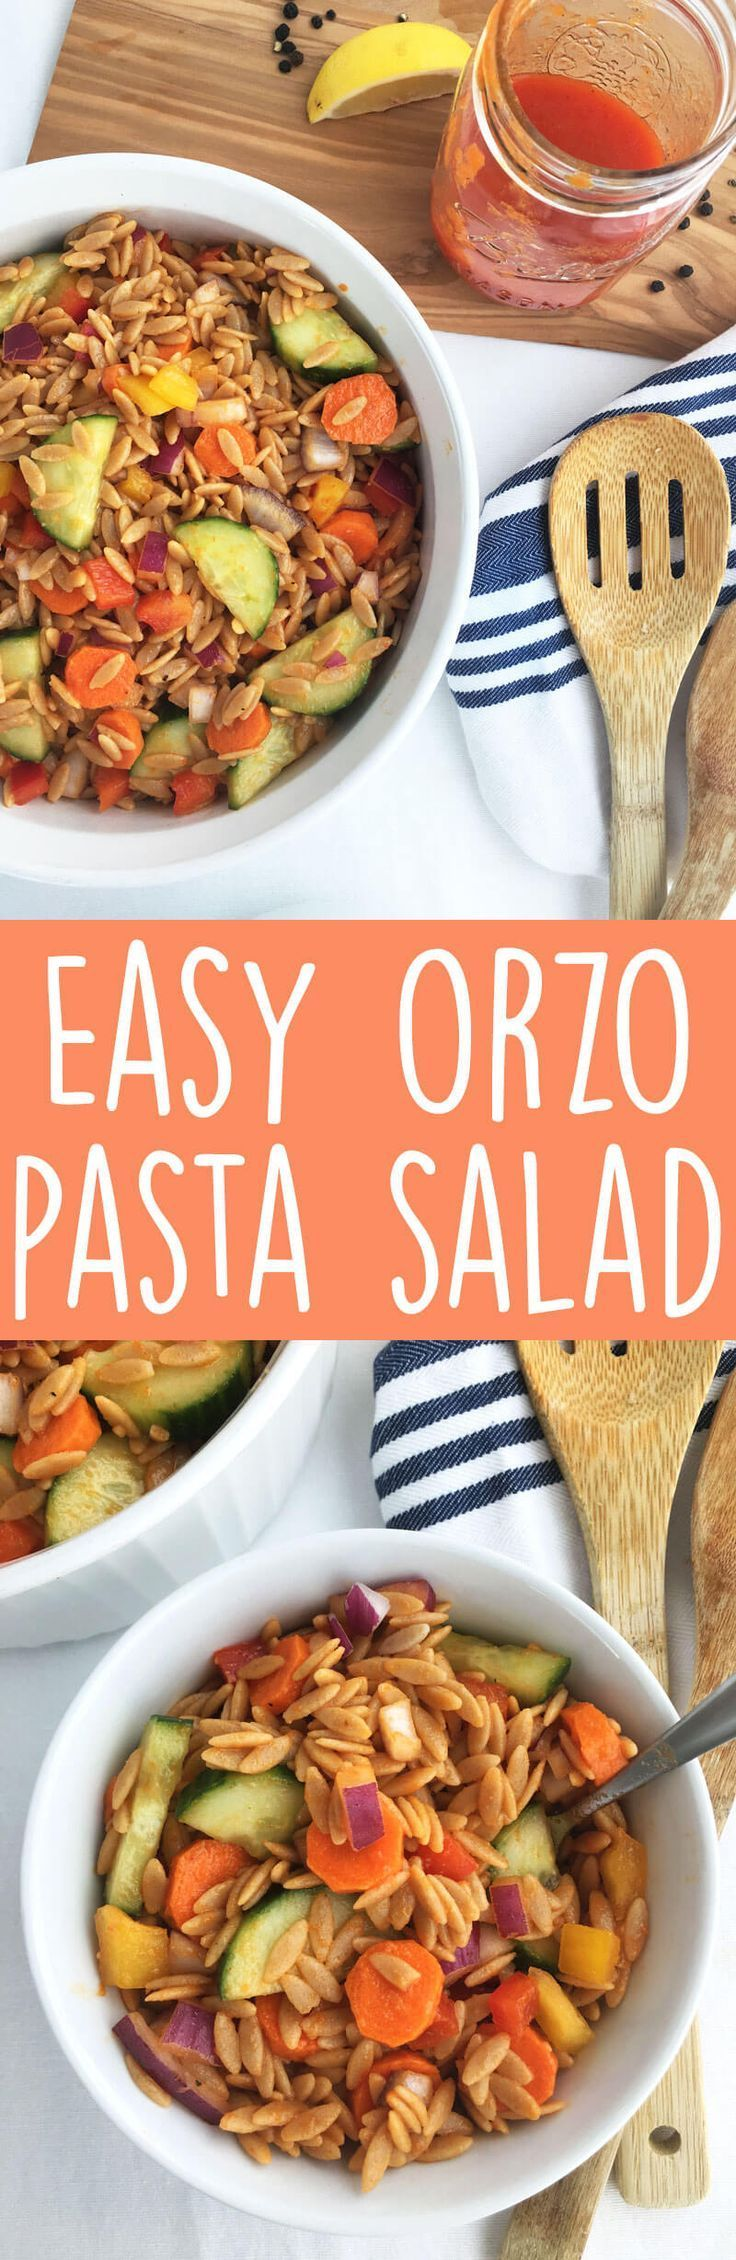 Easy Orzo Pasta Salad Recipe - Any time of year is the prefect time to make this delicious vegan pasta salad recipe! Toss it with roasted red pepper dressing and you have a healthy side dish loaded with veggies and flavor. | thecrunchychronicles.com